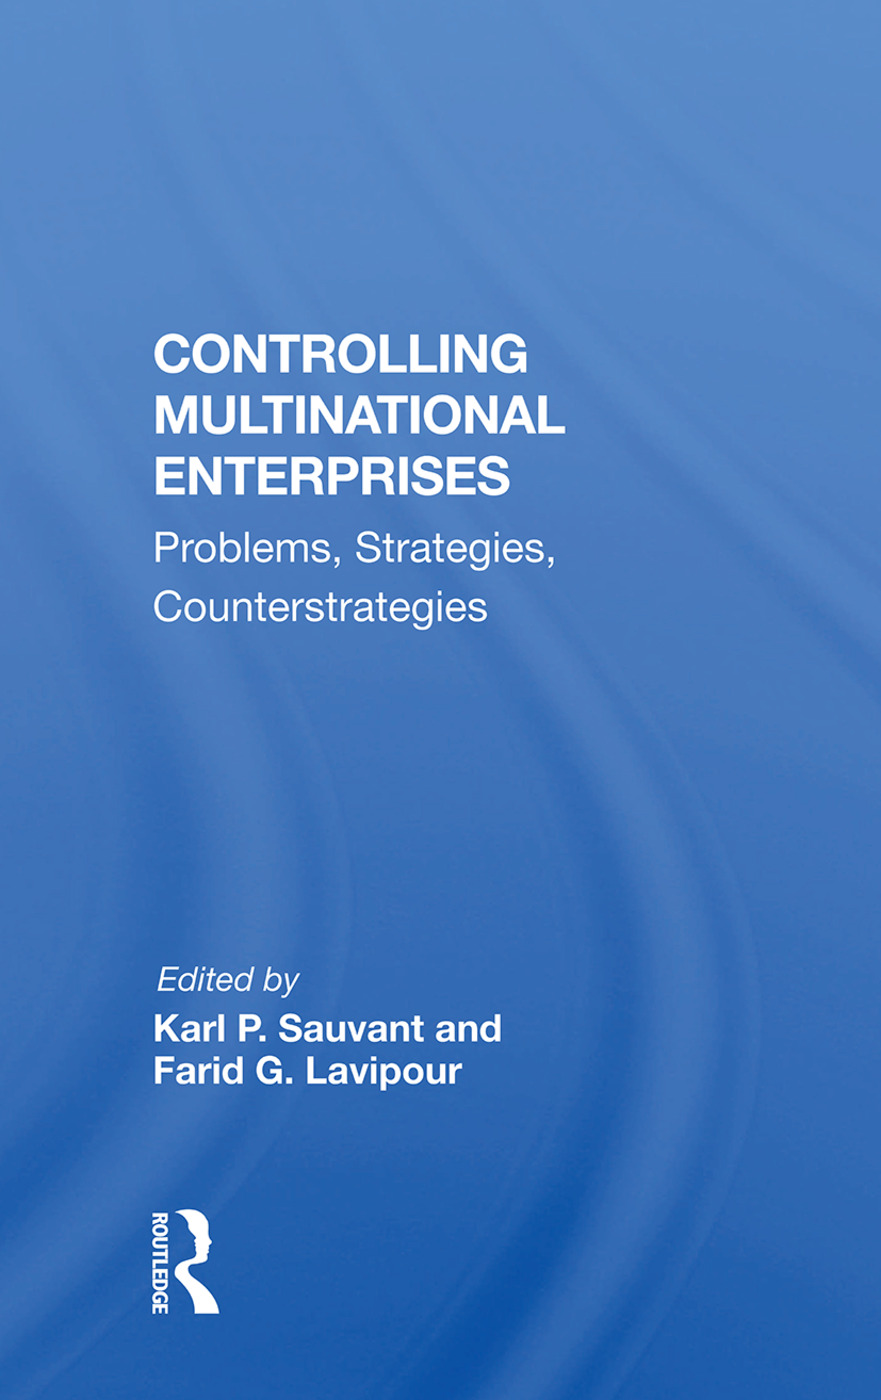 Controlling Multinational Enterprises: Problems, Strategies, Counterstrategies, 1st Edition (Paperback) book cover